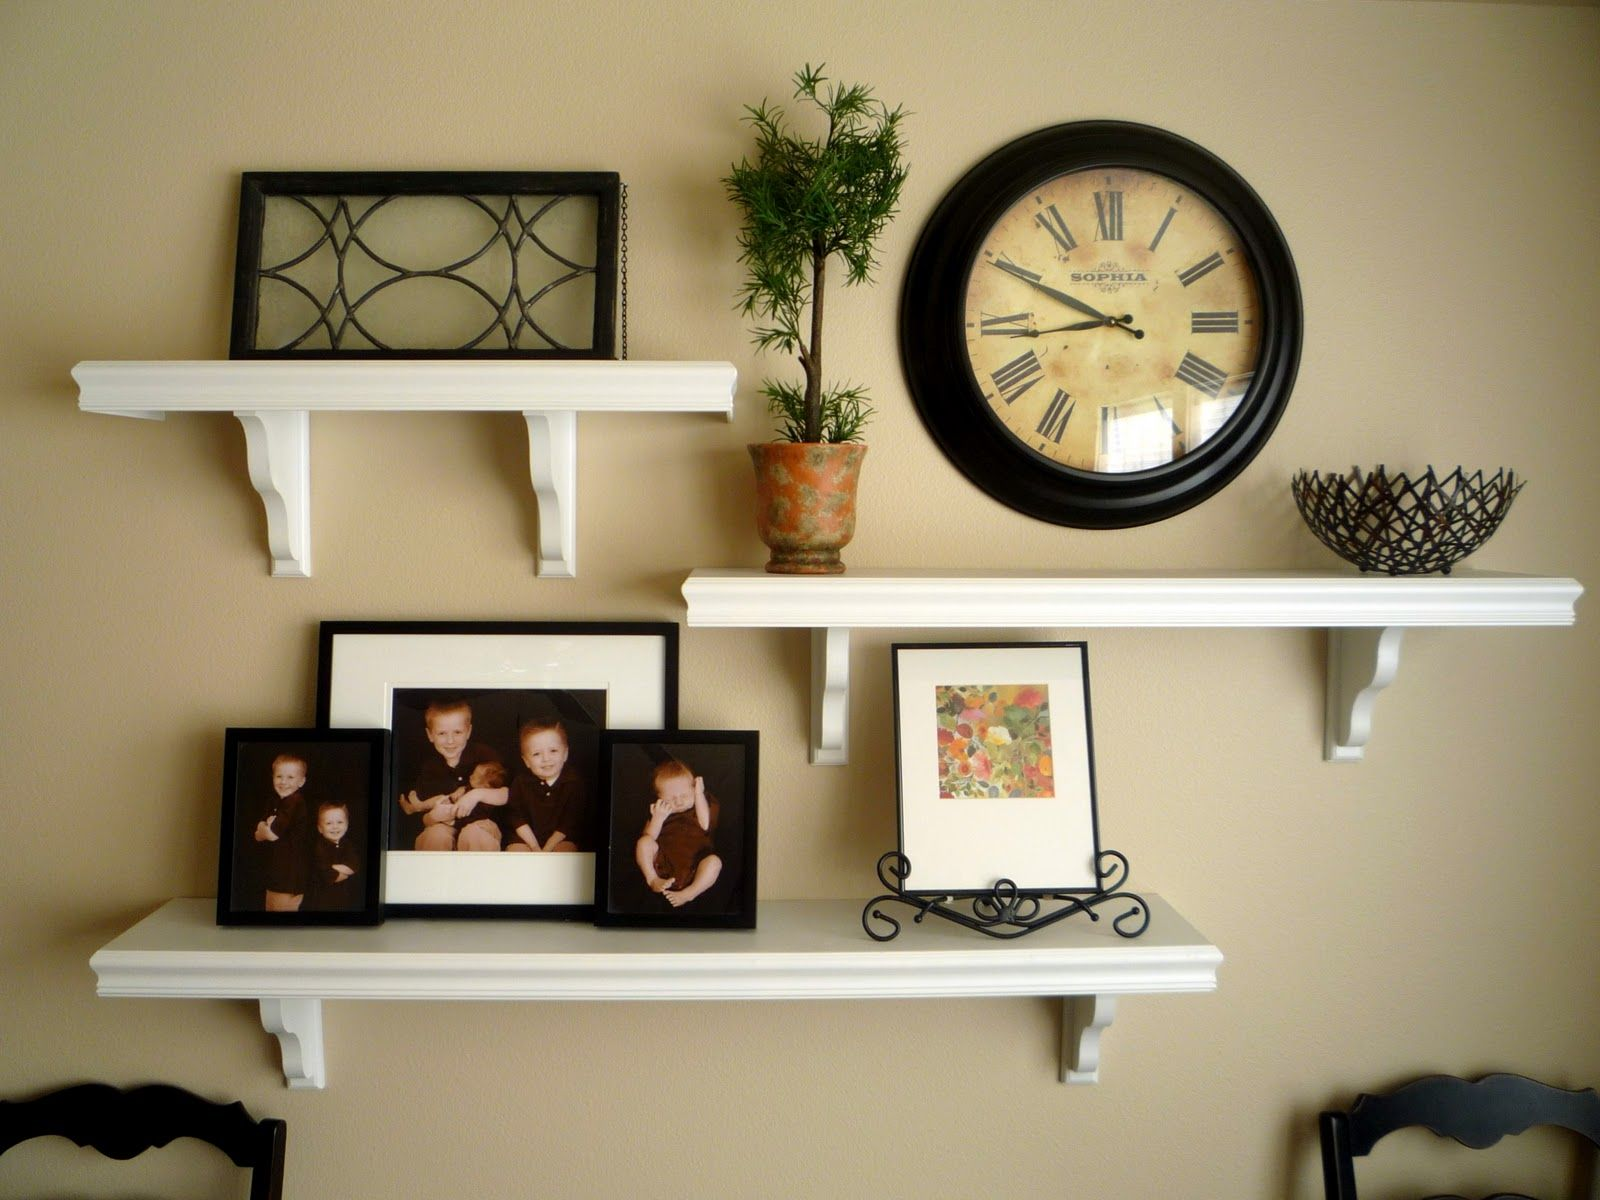 picture and shelves on wall together it all started after being inspired by thrifty decor - Decorative Wall Shelves